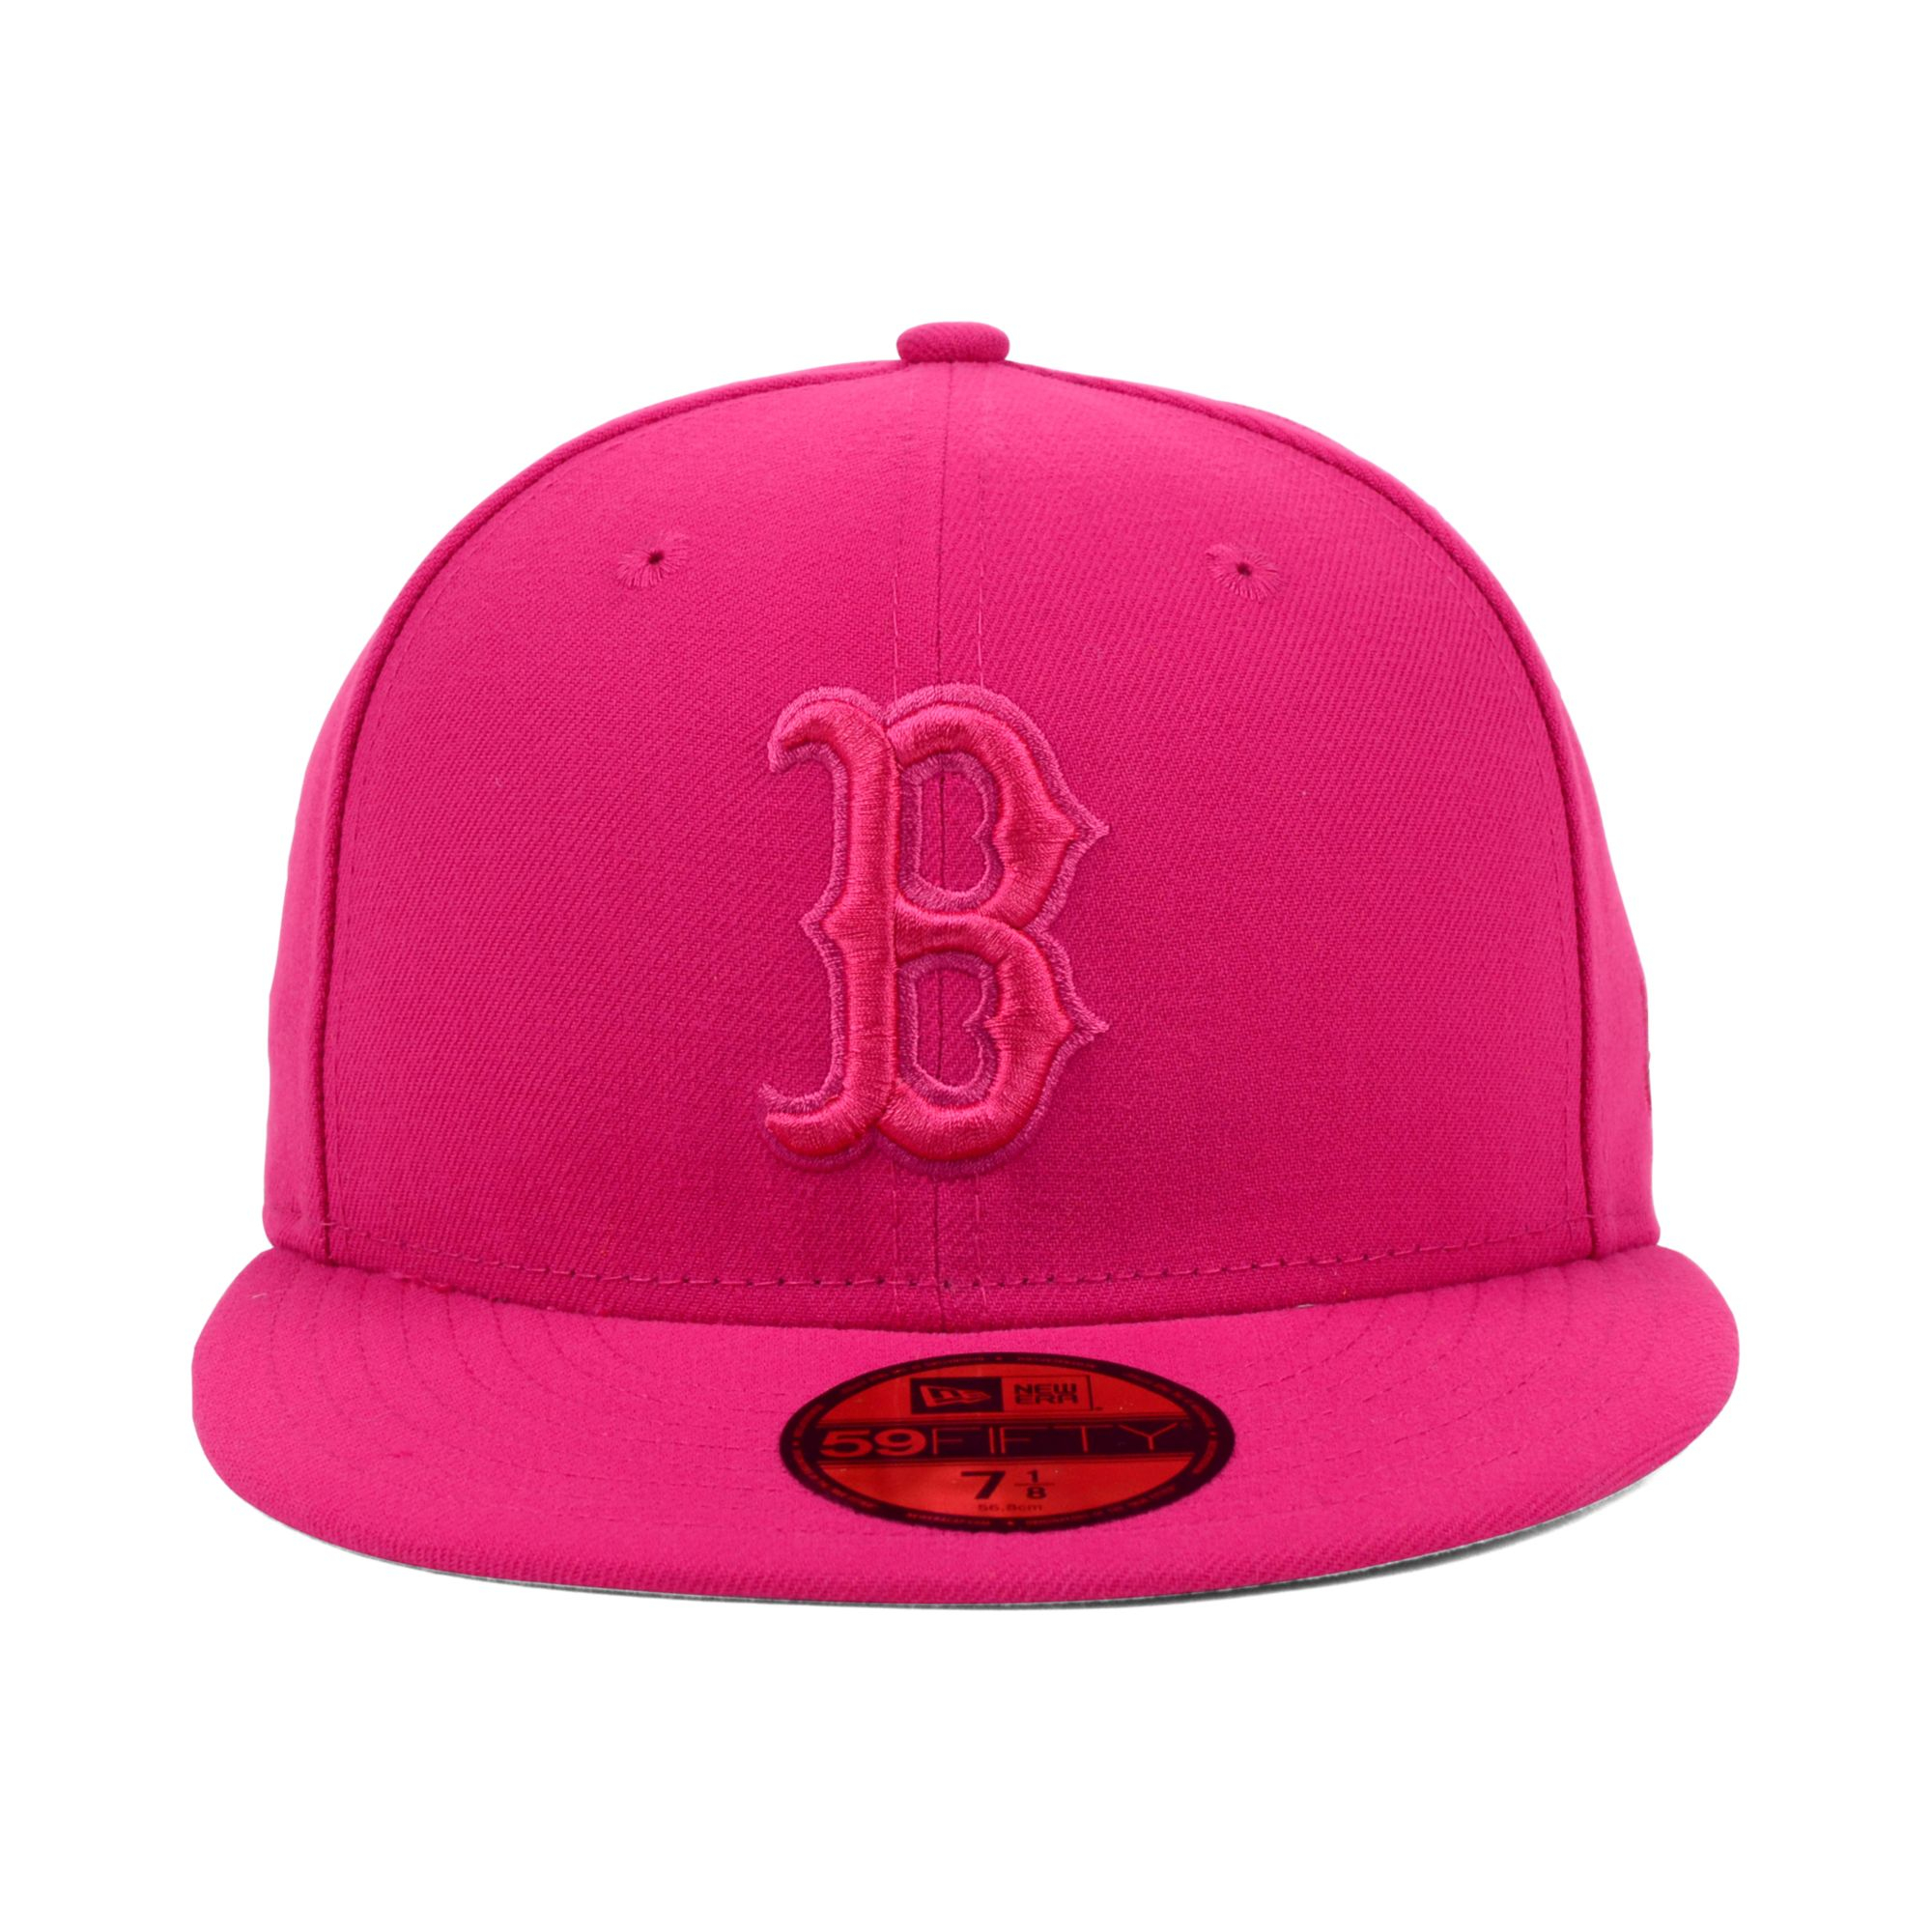 254a3714016 ... promo code for lyst ktz boston red sox pop tonal 59fifty cap in pink  8a1e3 fd5d6